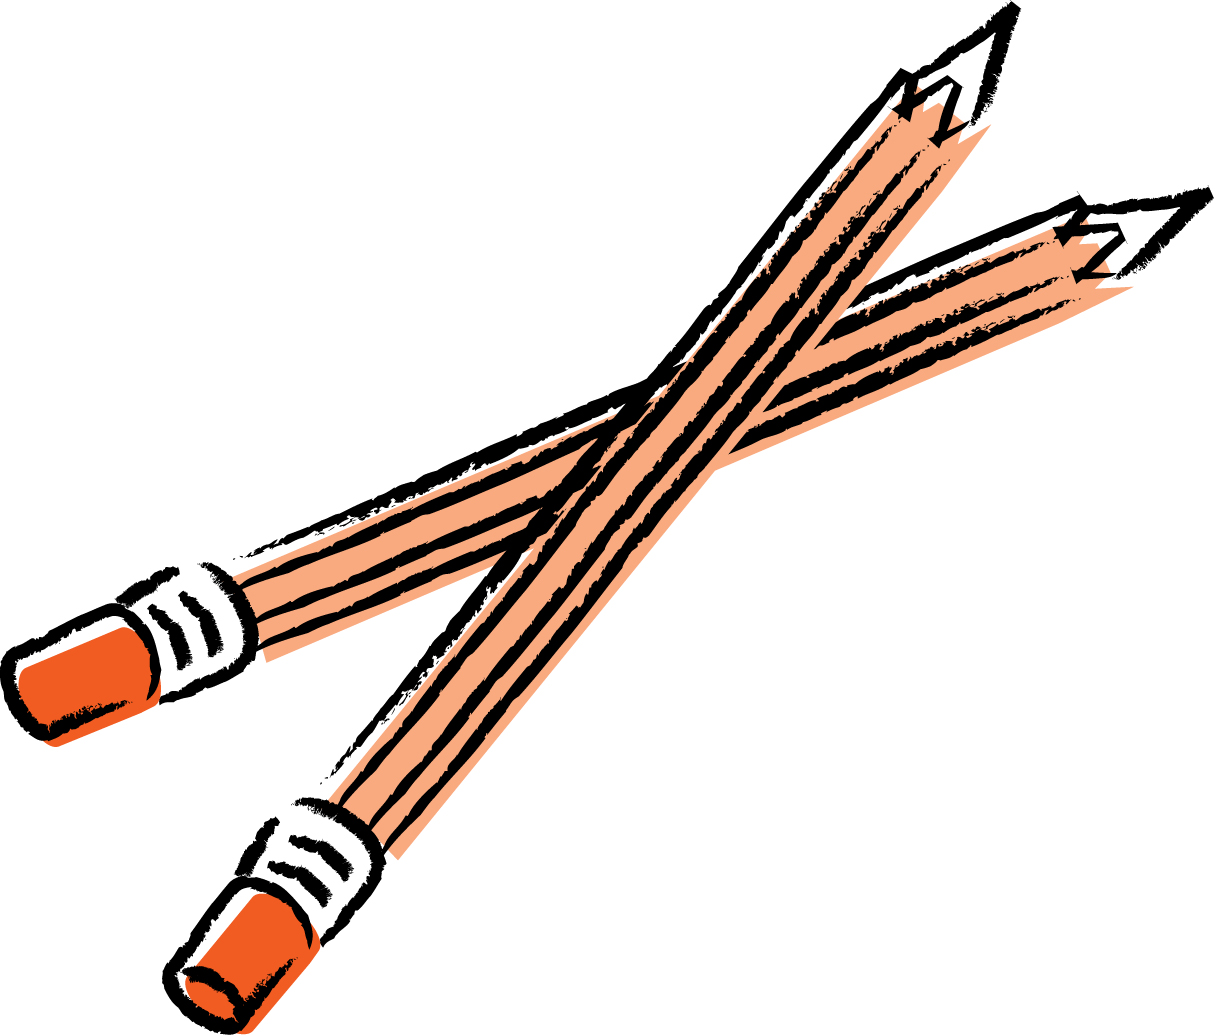 Pictures Of Pencils - ClipArt Best